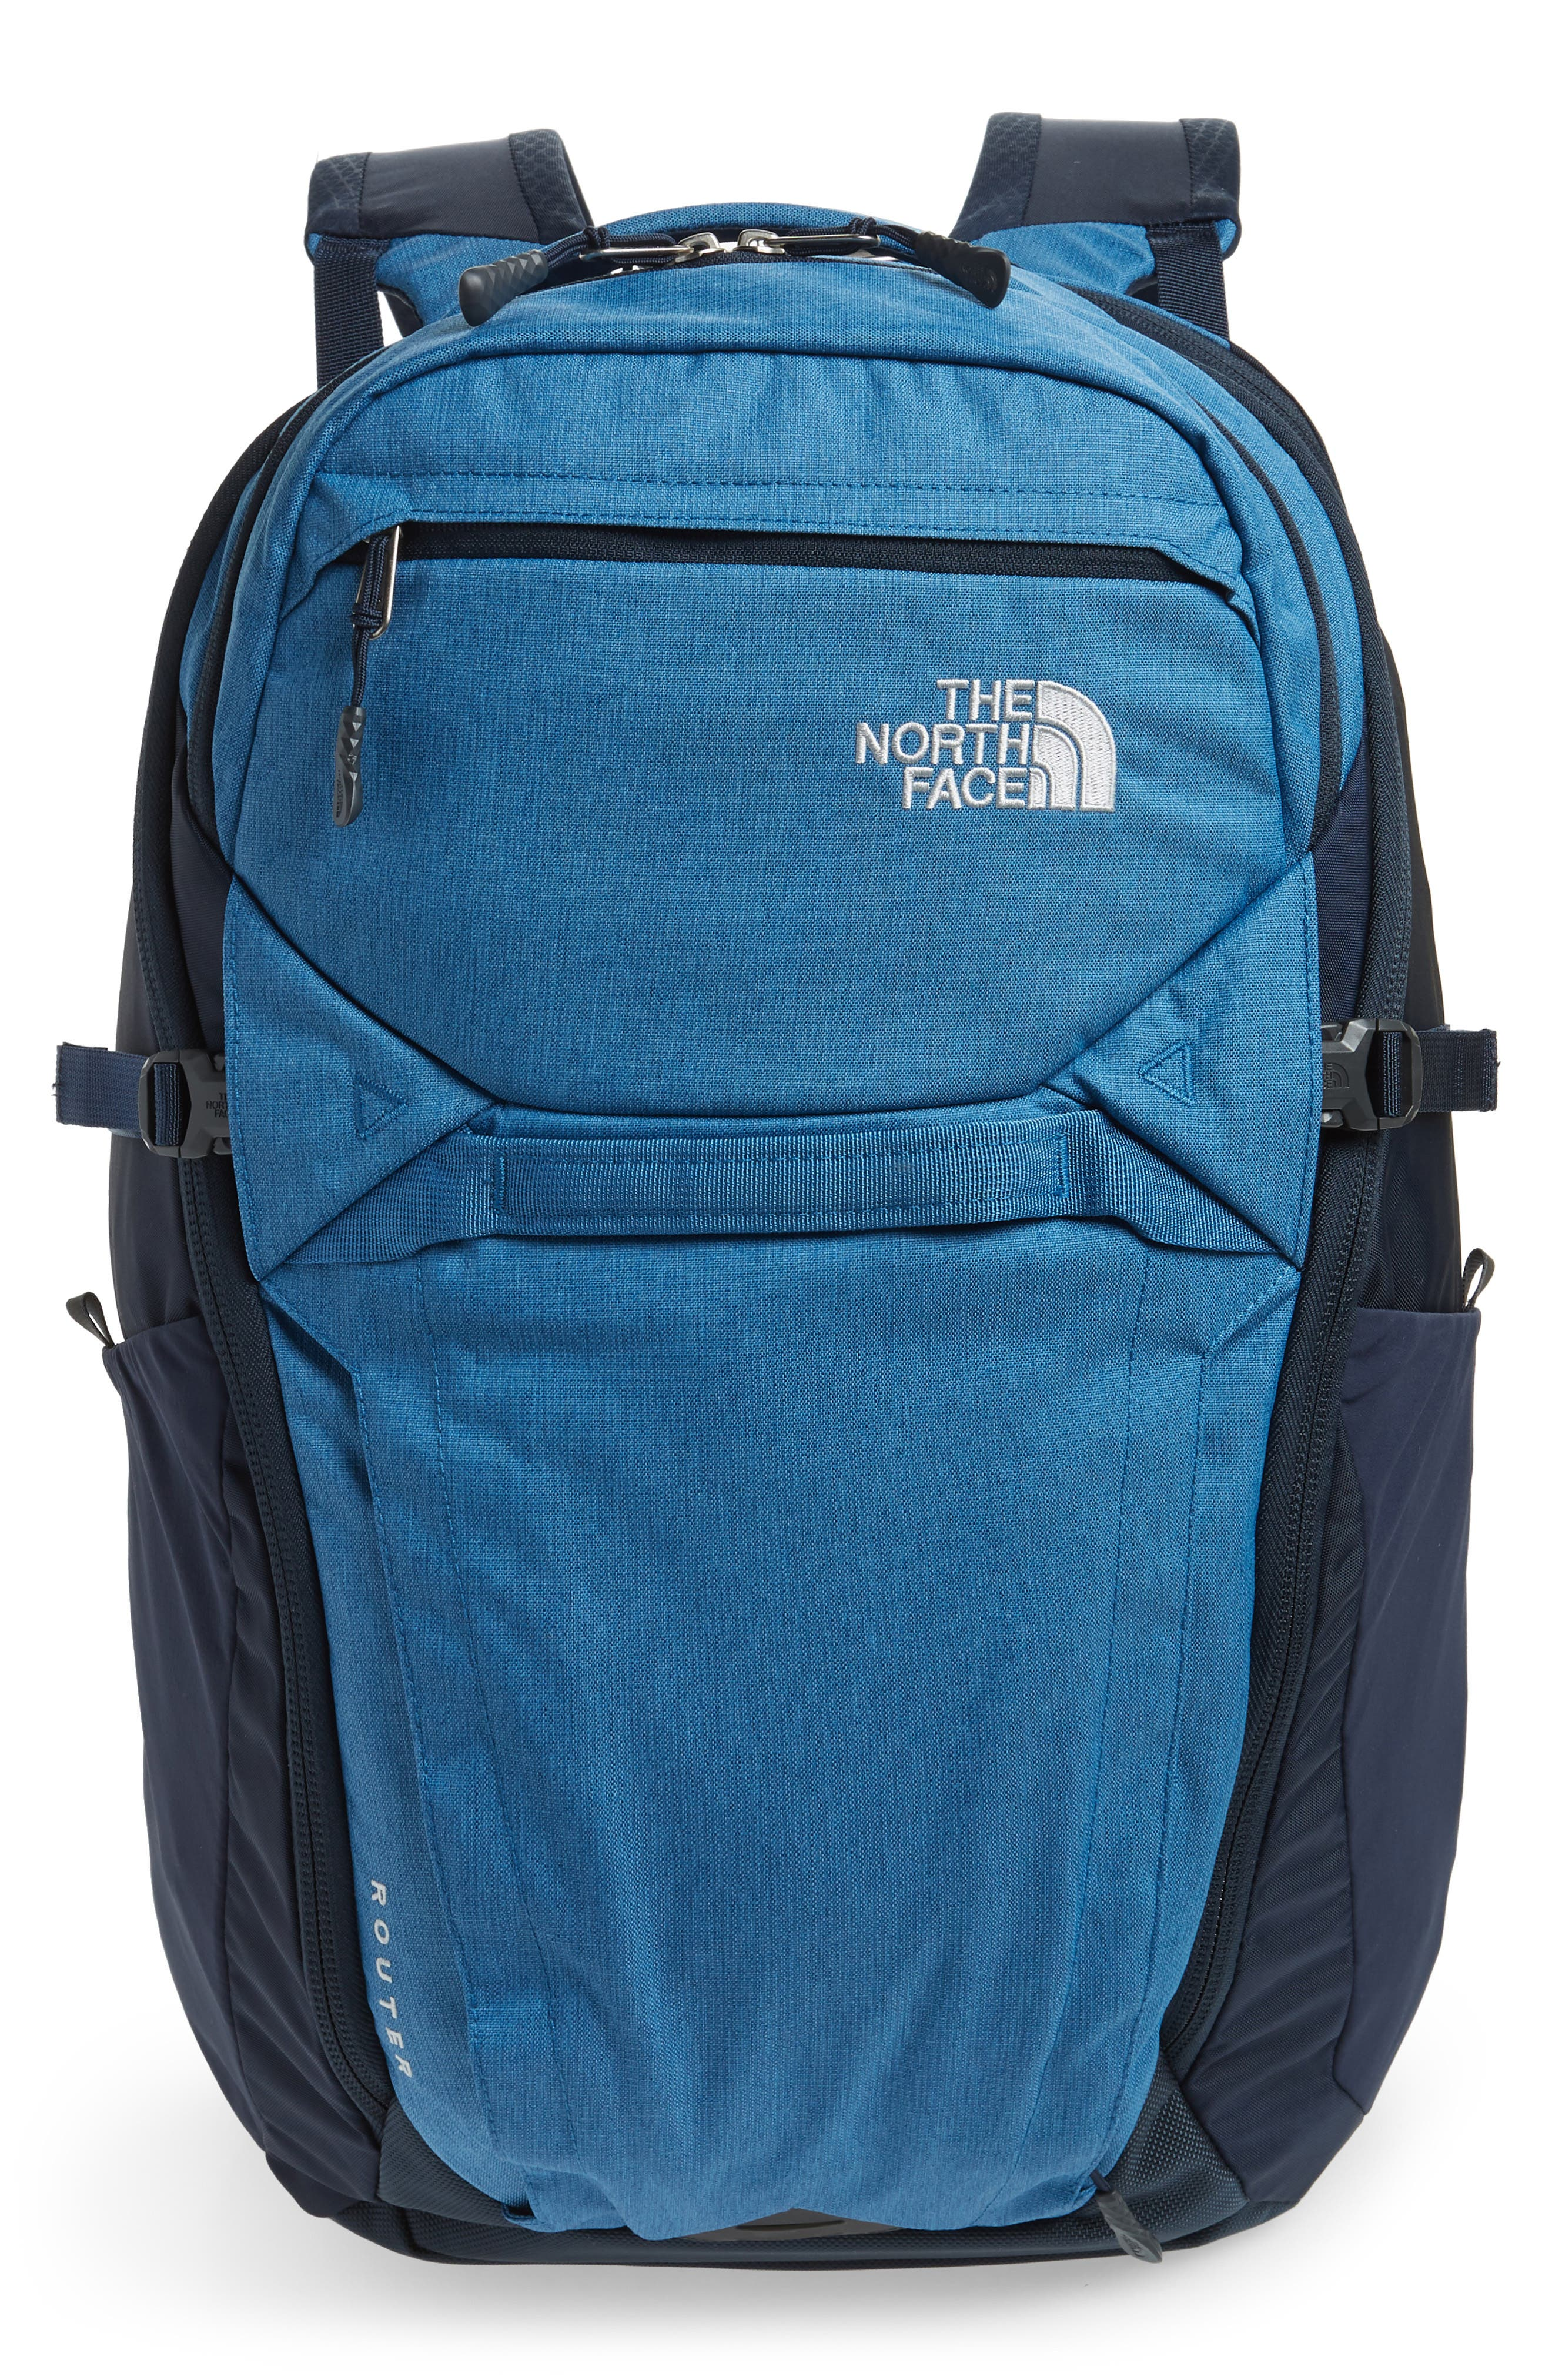 Router Backpack,                             Main thumbnail 1, color,                             DISH BLUE HEATHER/ URBAN NAVY